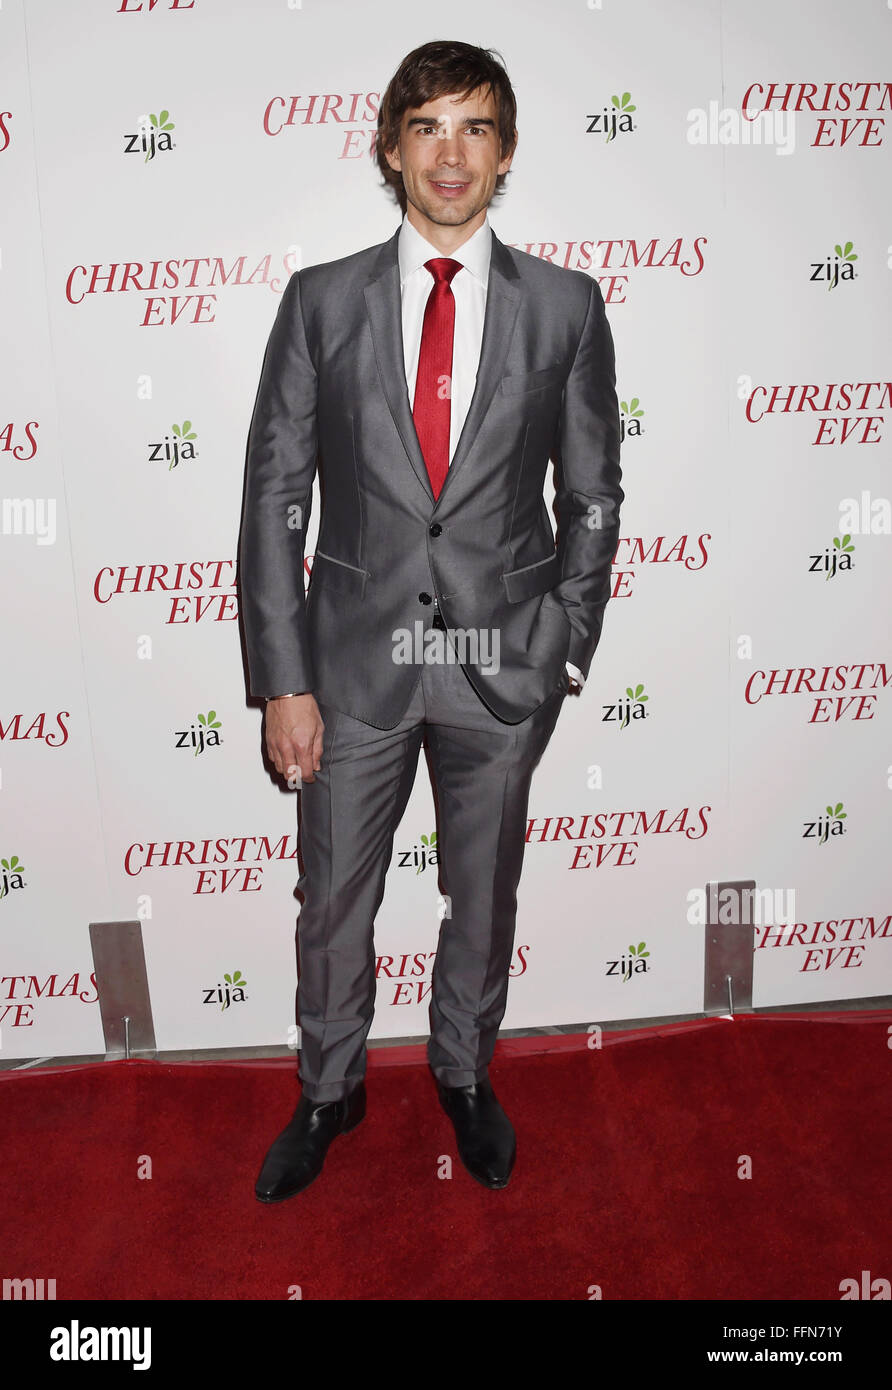 Actor Christopher Gorham arrives at the premiere of Unstuck's 'Christmas Eve' at the ArcLight Hollywood - Stock Image